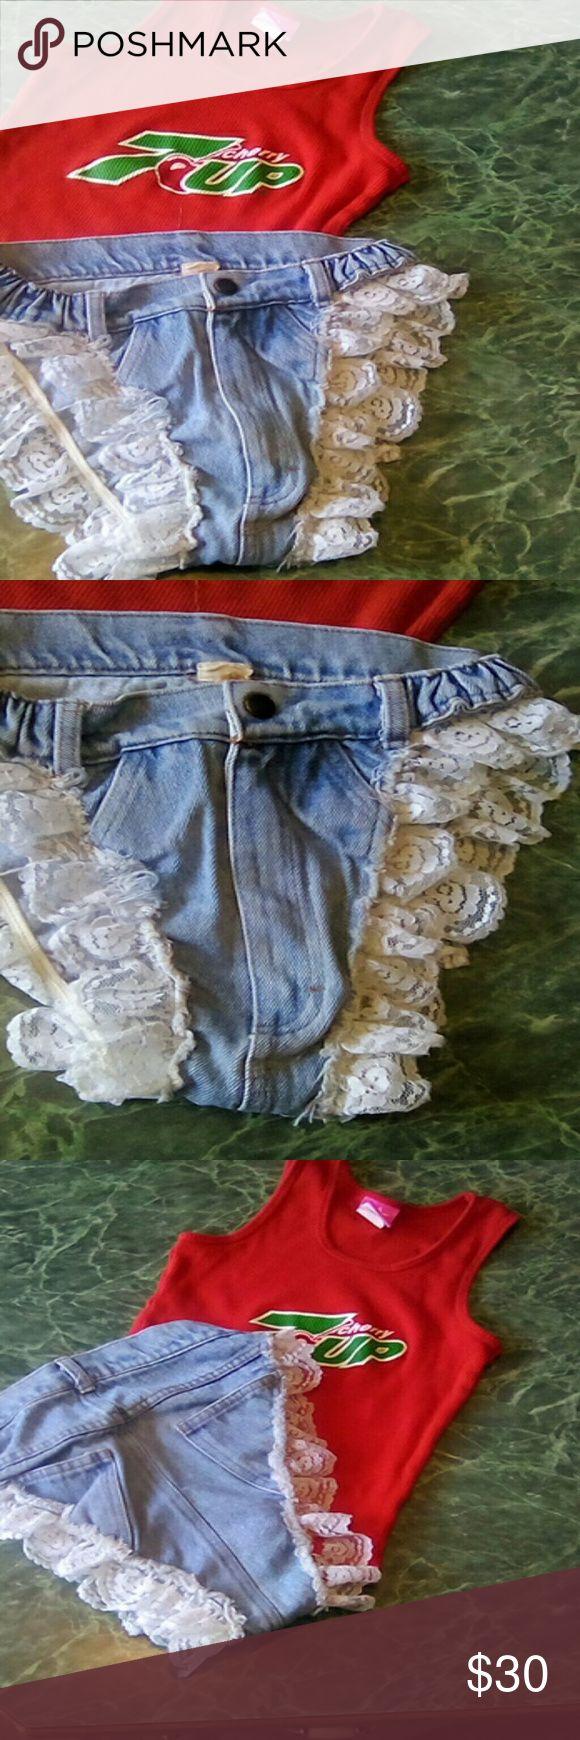 Vintage Ultimate Daisy Duke Short 7up top Super cute and a rare find, truly vintage size small top and bottom bottom has an easily repairable hole in the lace see last pic. Shorts